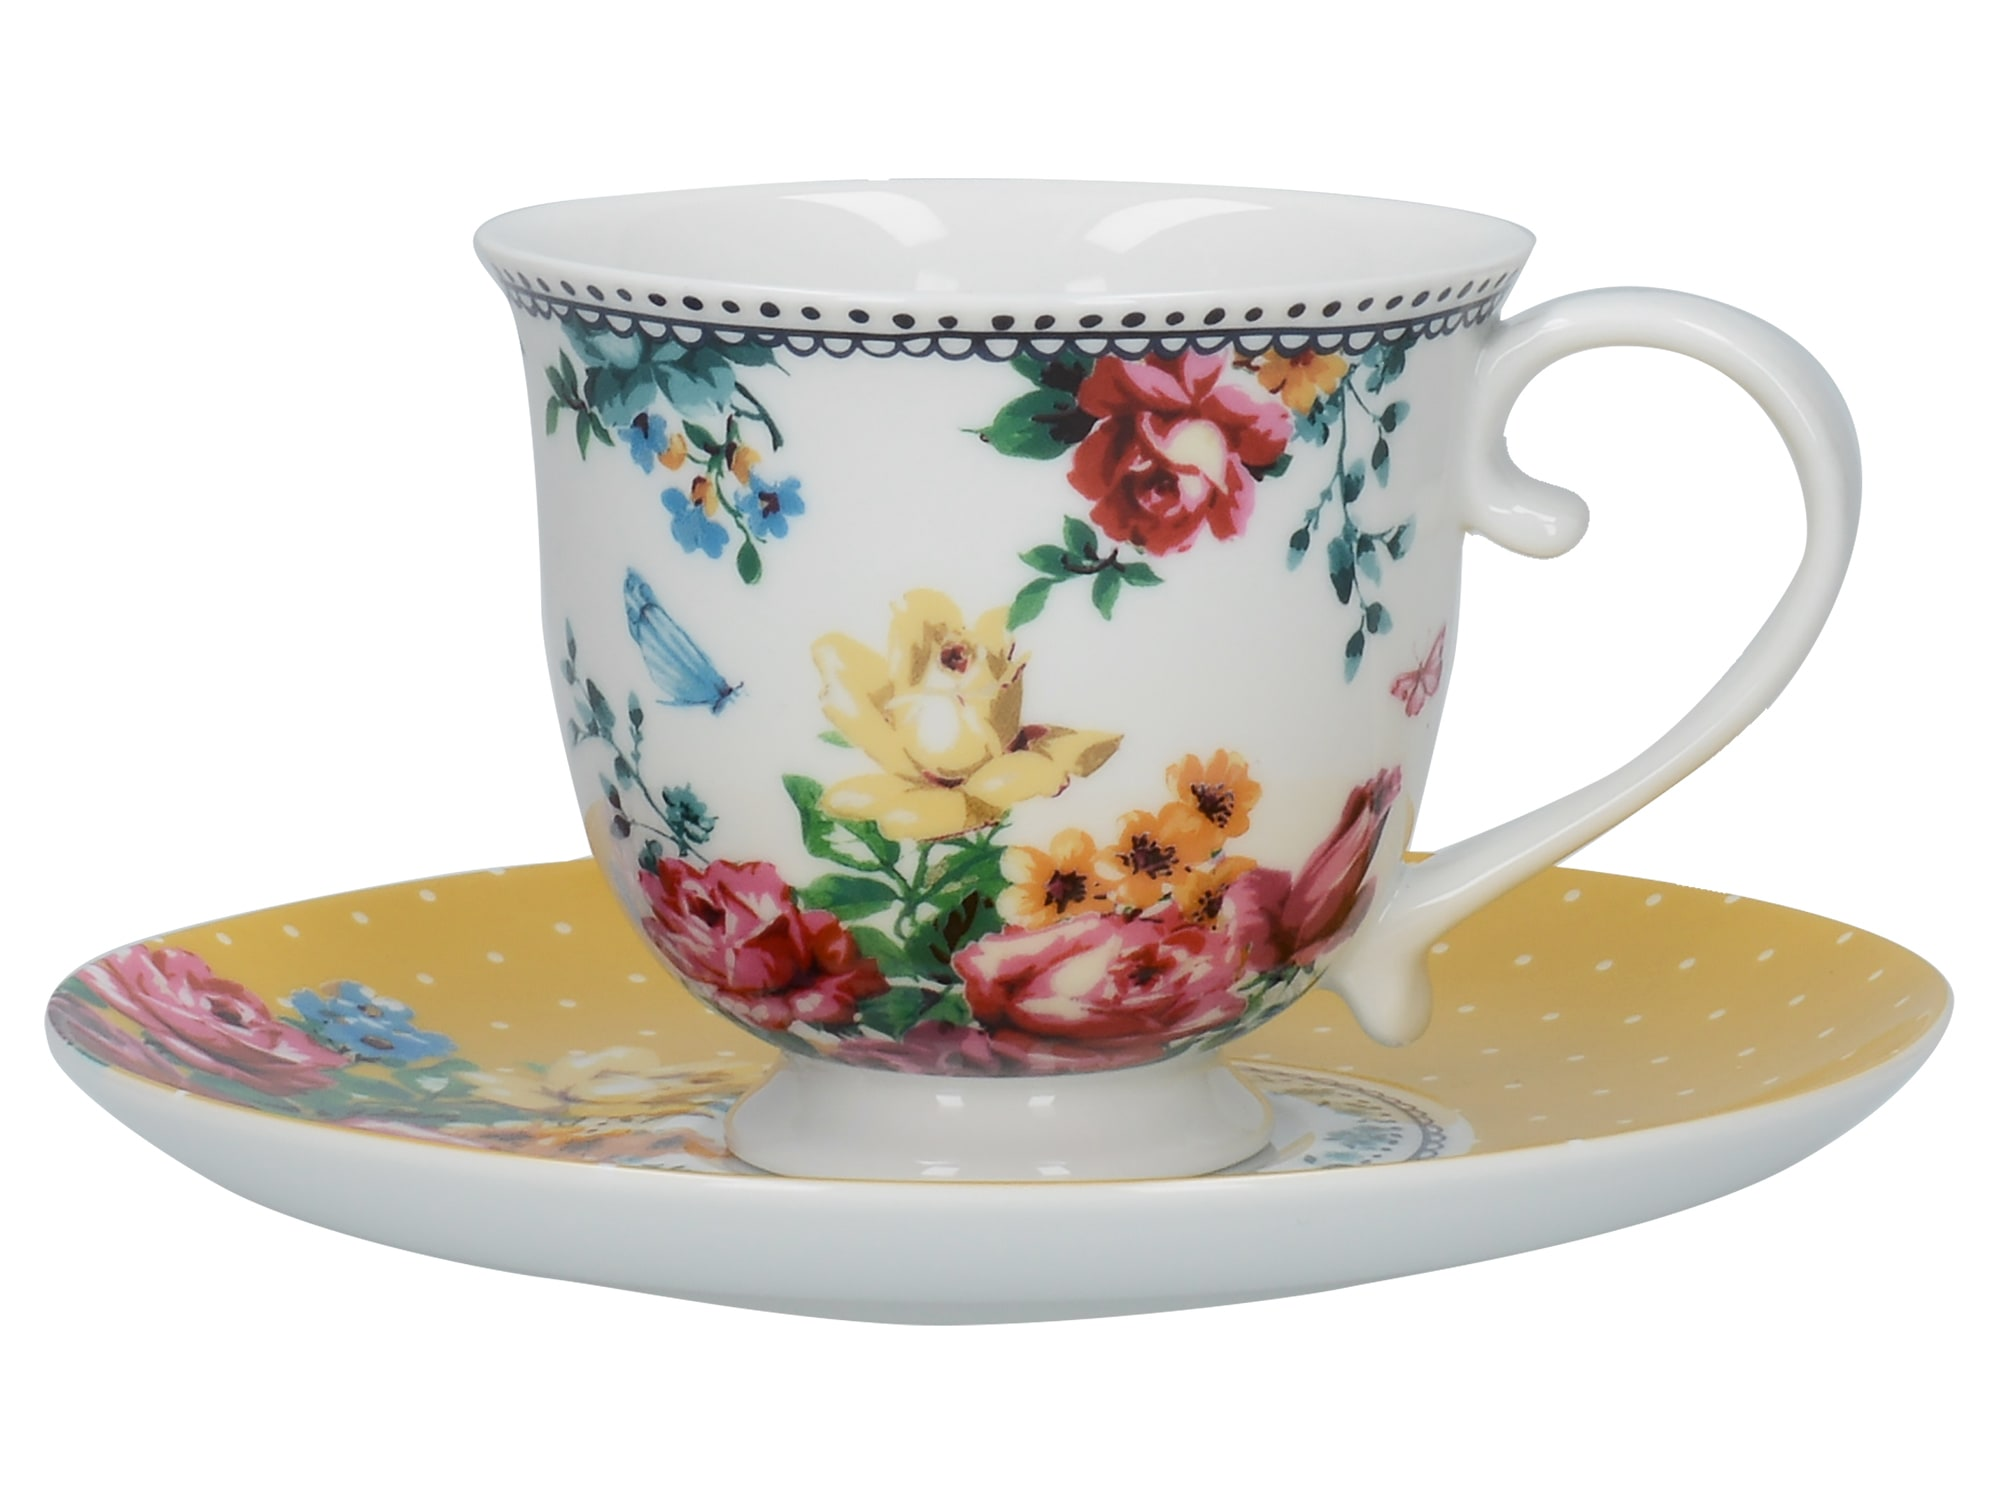 Katie Alice Bohemian Spirit Teacup And Saucer